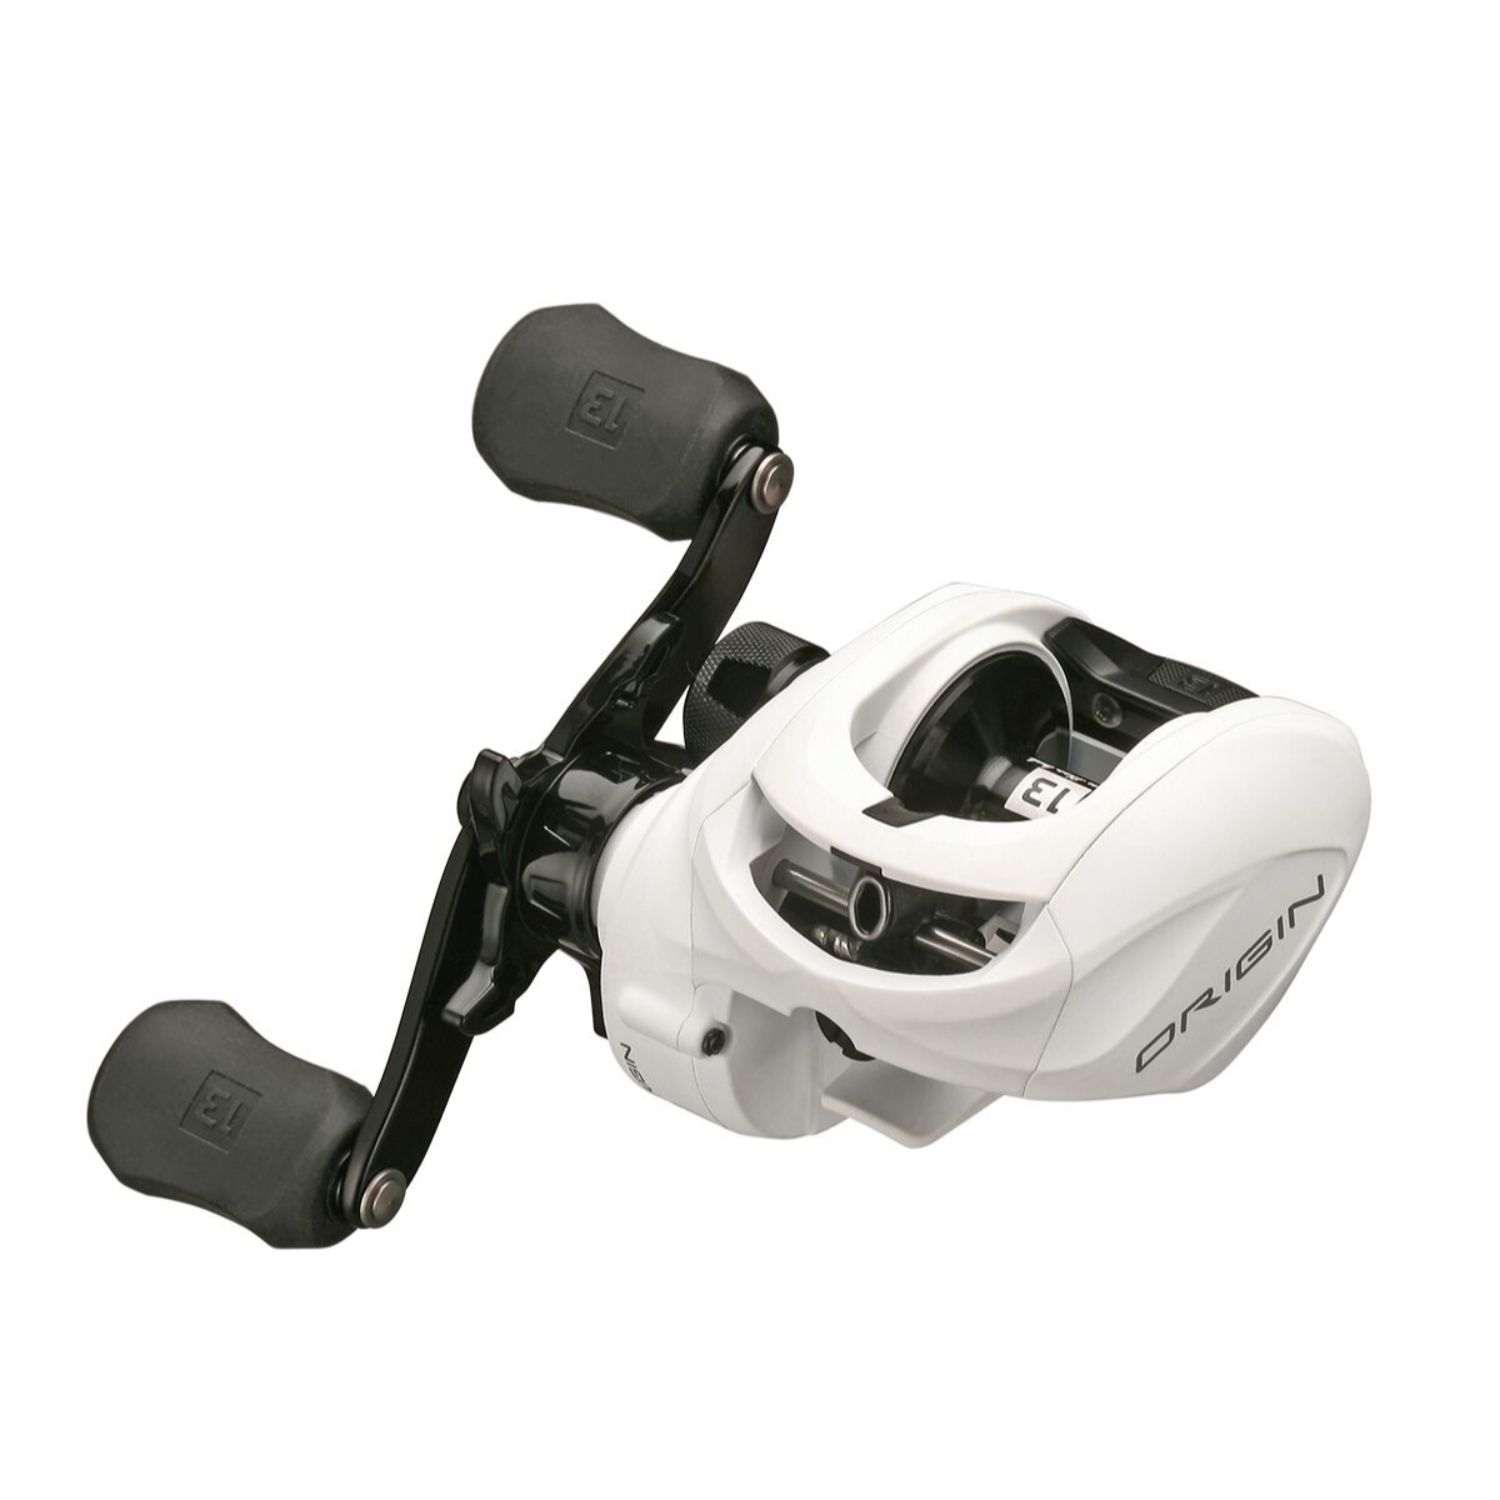 13 Fishing ORIGIN C Baitcast Reel 8.1:1 LH